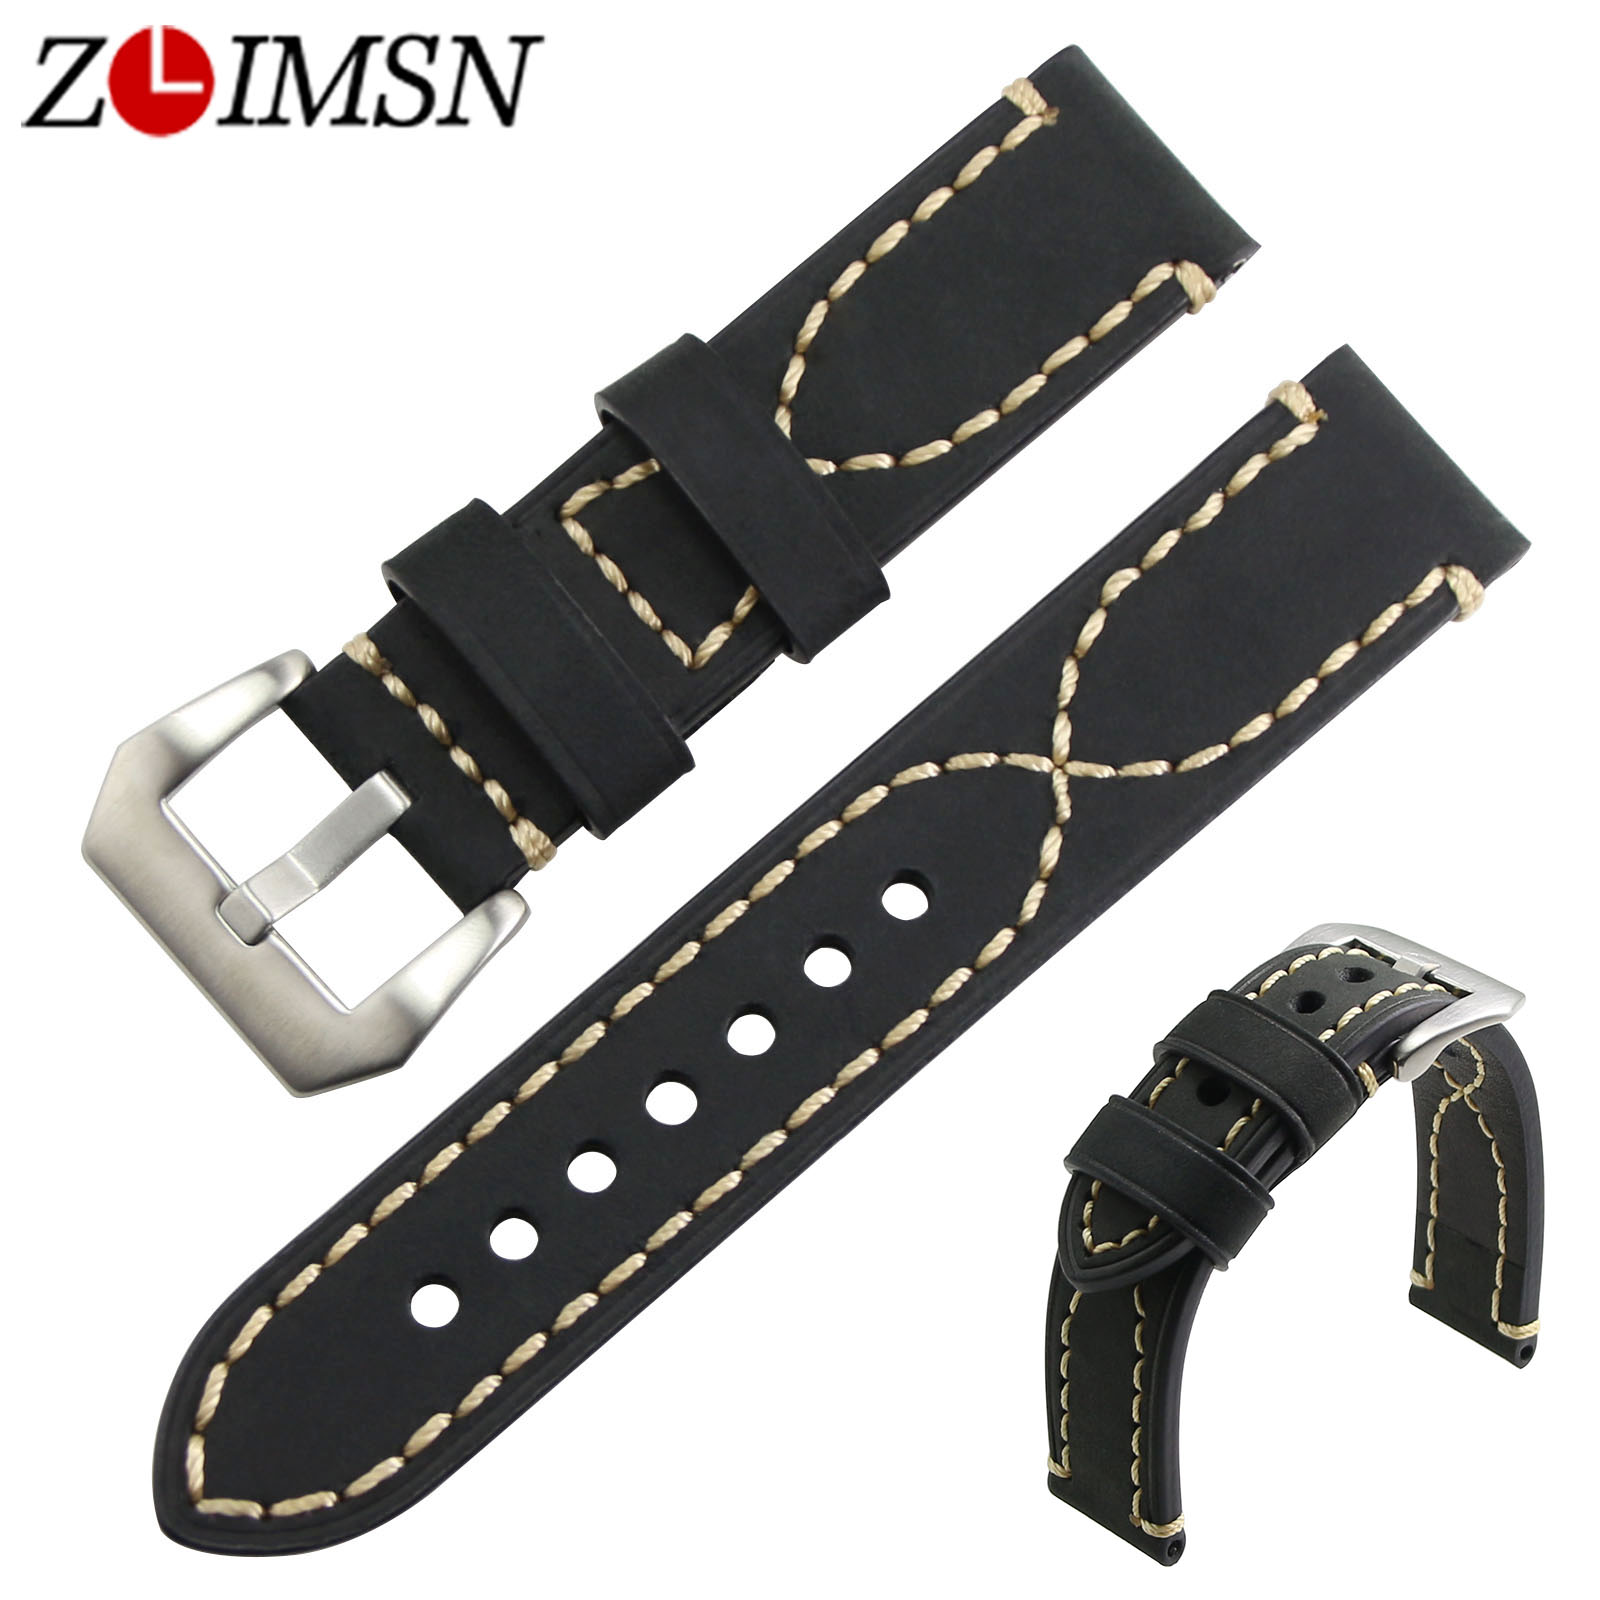 ZLIMSN Genuine Leather Watchbands Black Brown Yellow Thick Watch Band Strap Belt Stainless Steel Buckle Brushed 20 22 24 26mm suunto core brushed steel brown leather